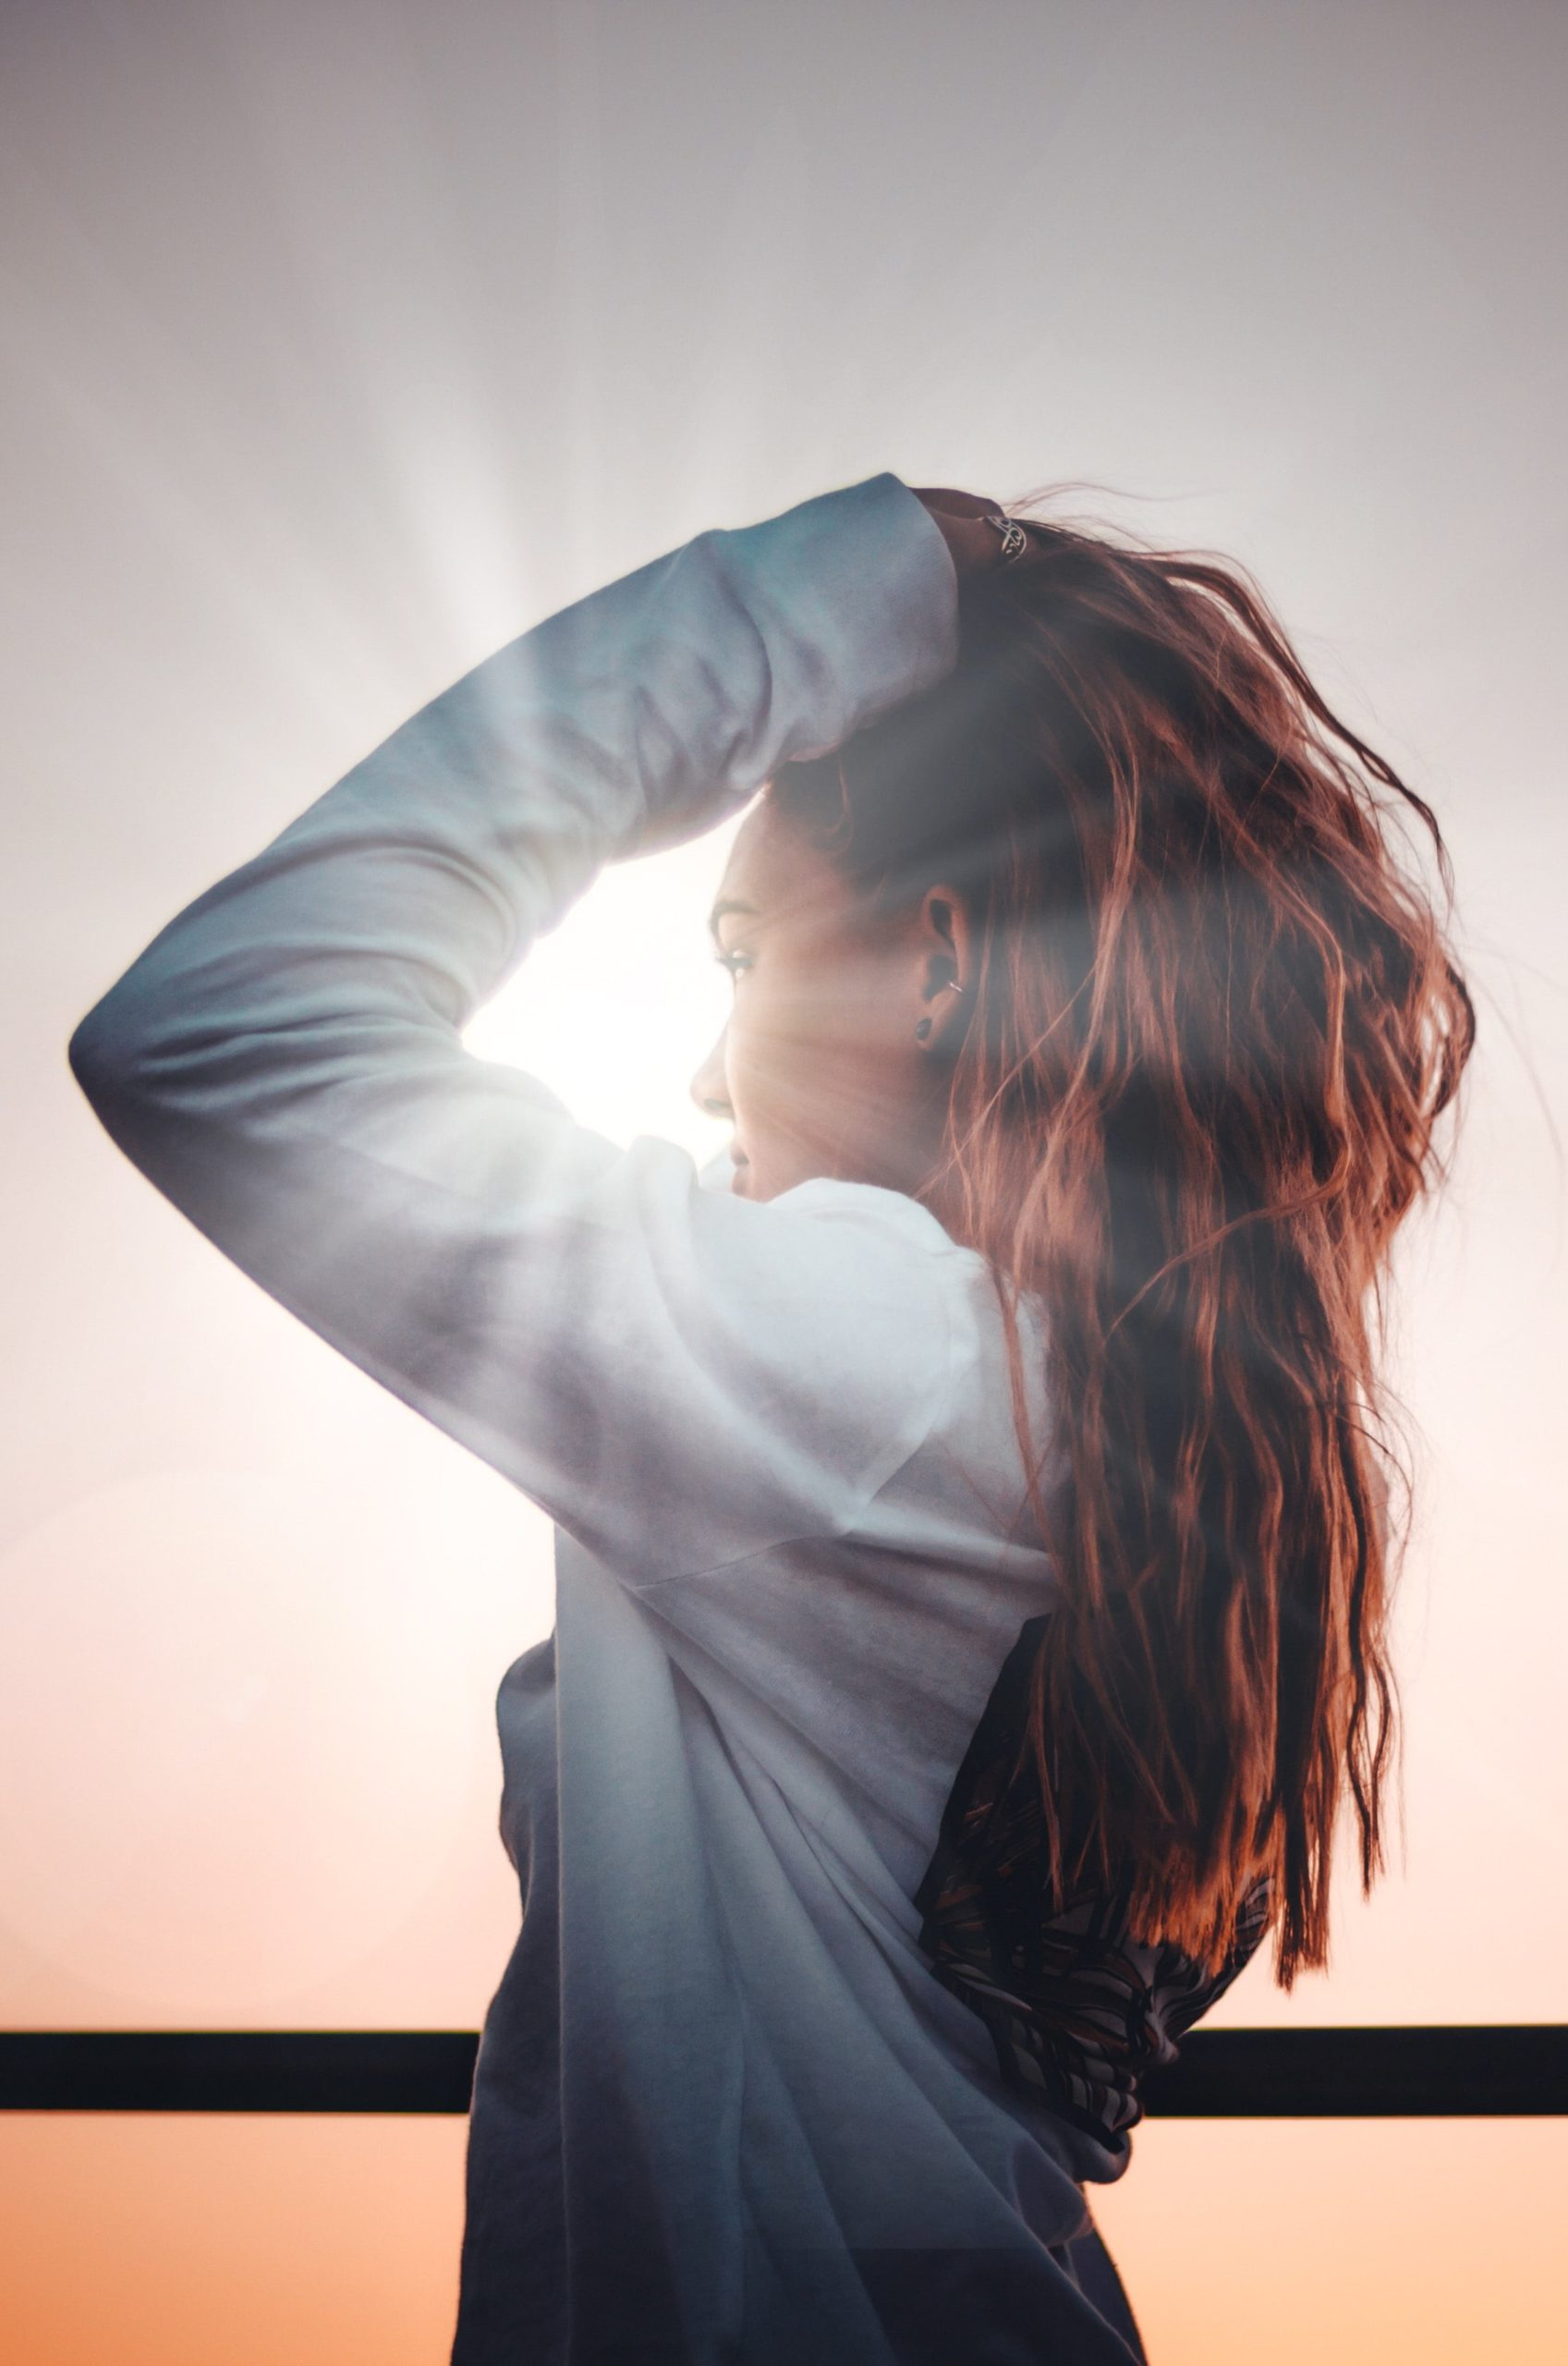 woman with long curly hair facing into the sun.